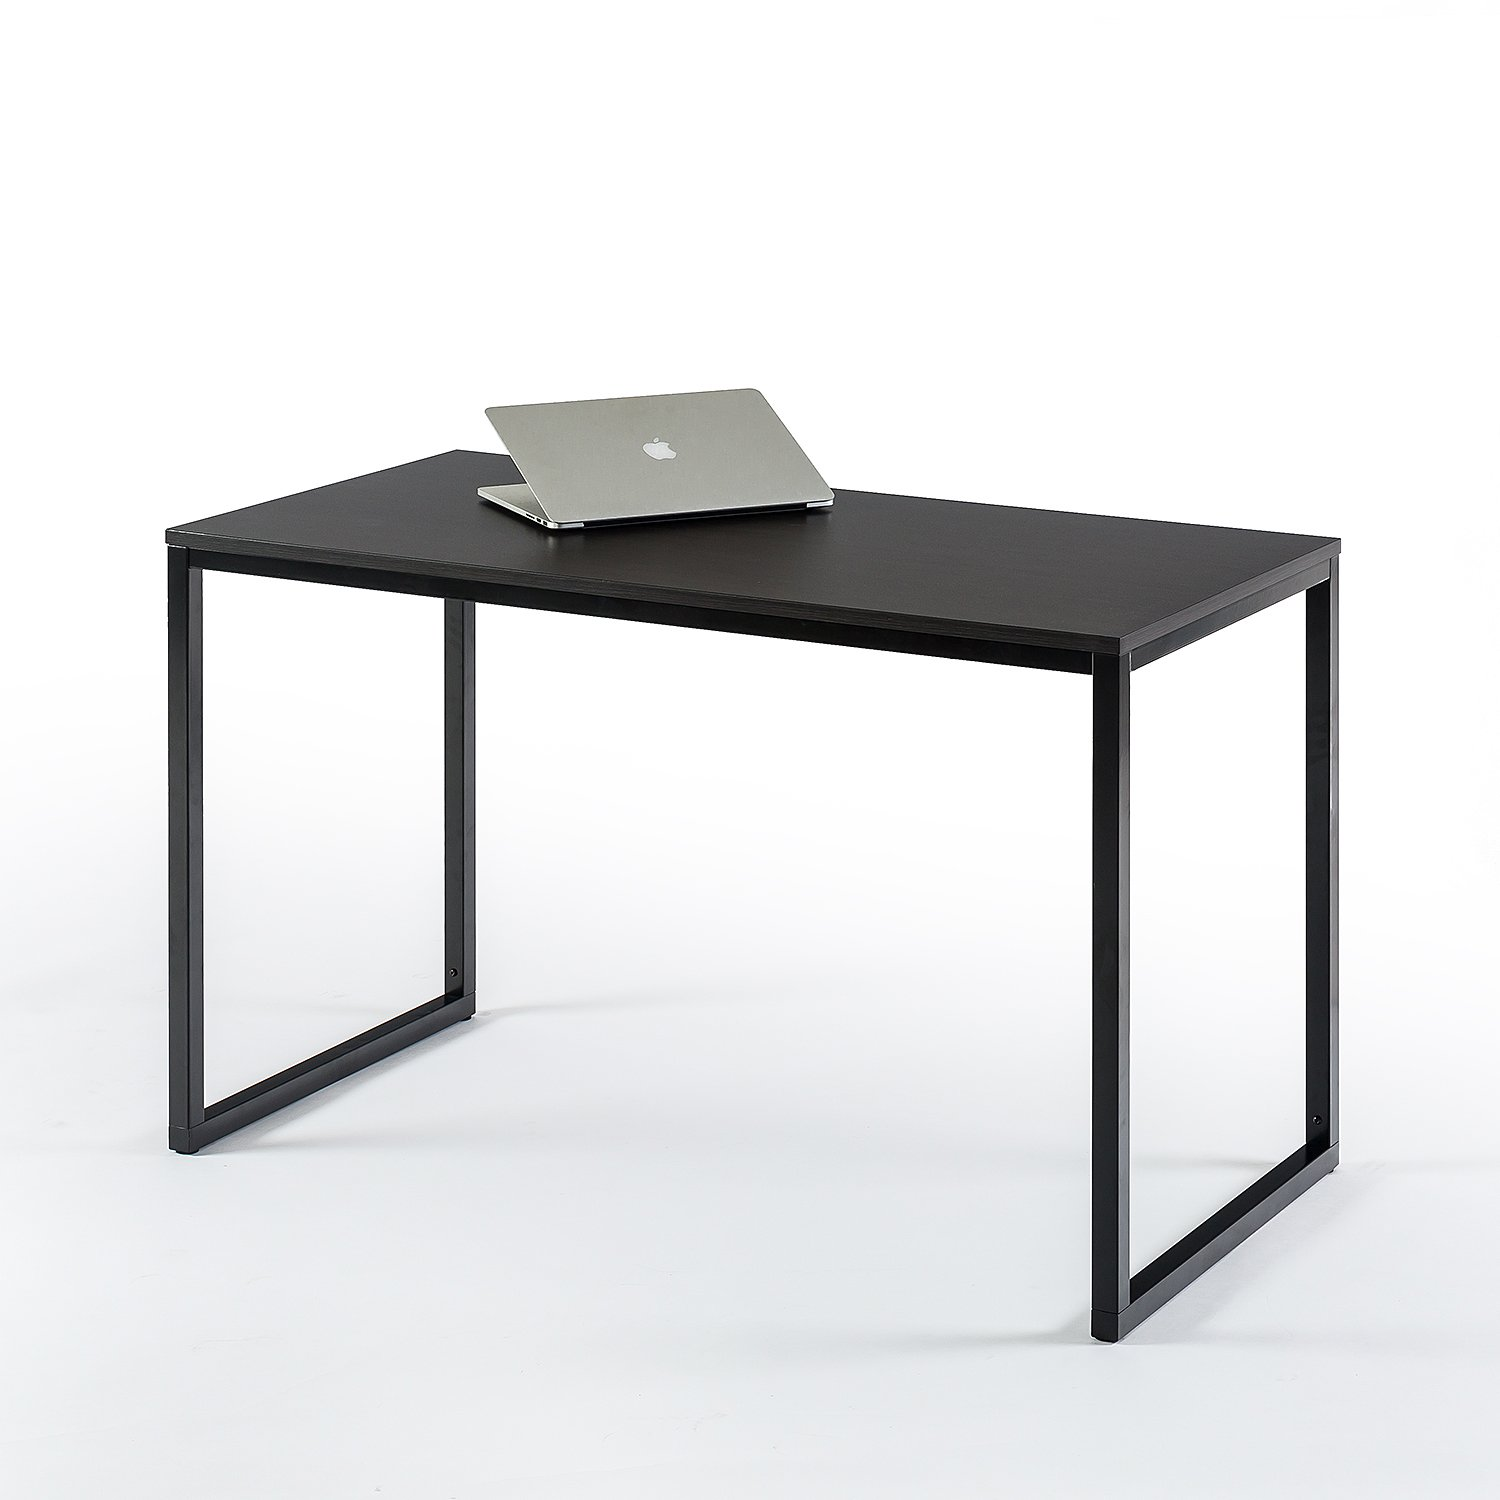 Zinus Modern Studio Collection Soho Desk/Table / Computer Table, Espresso by Zinus